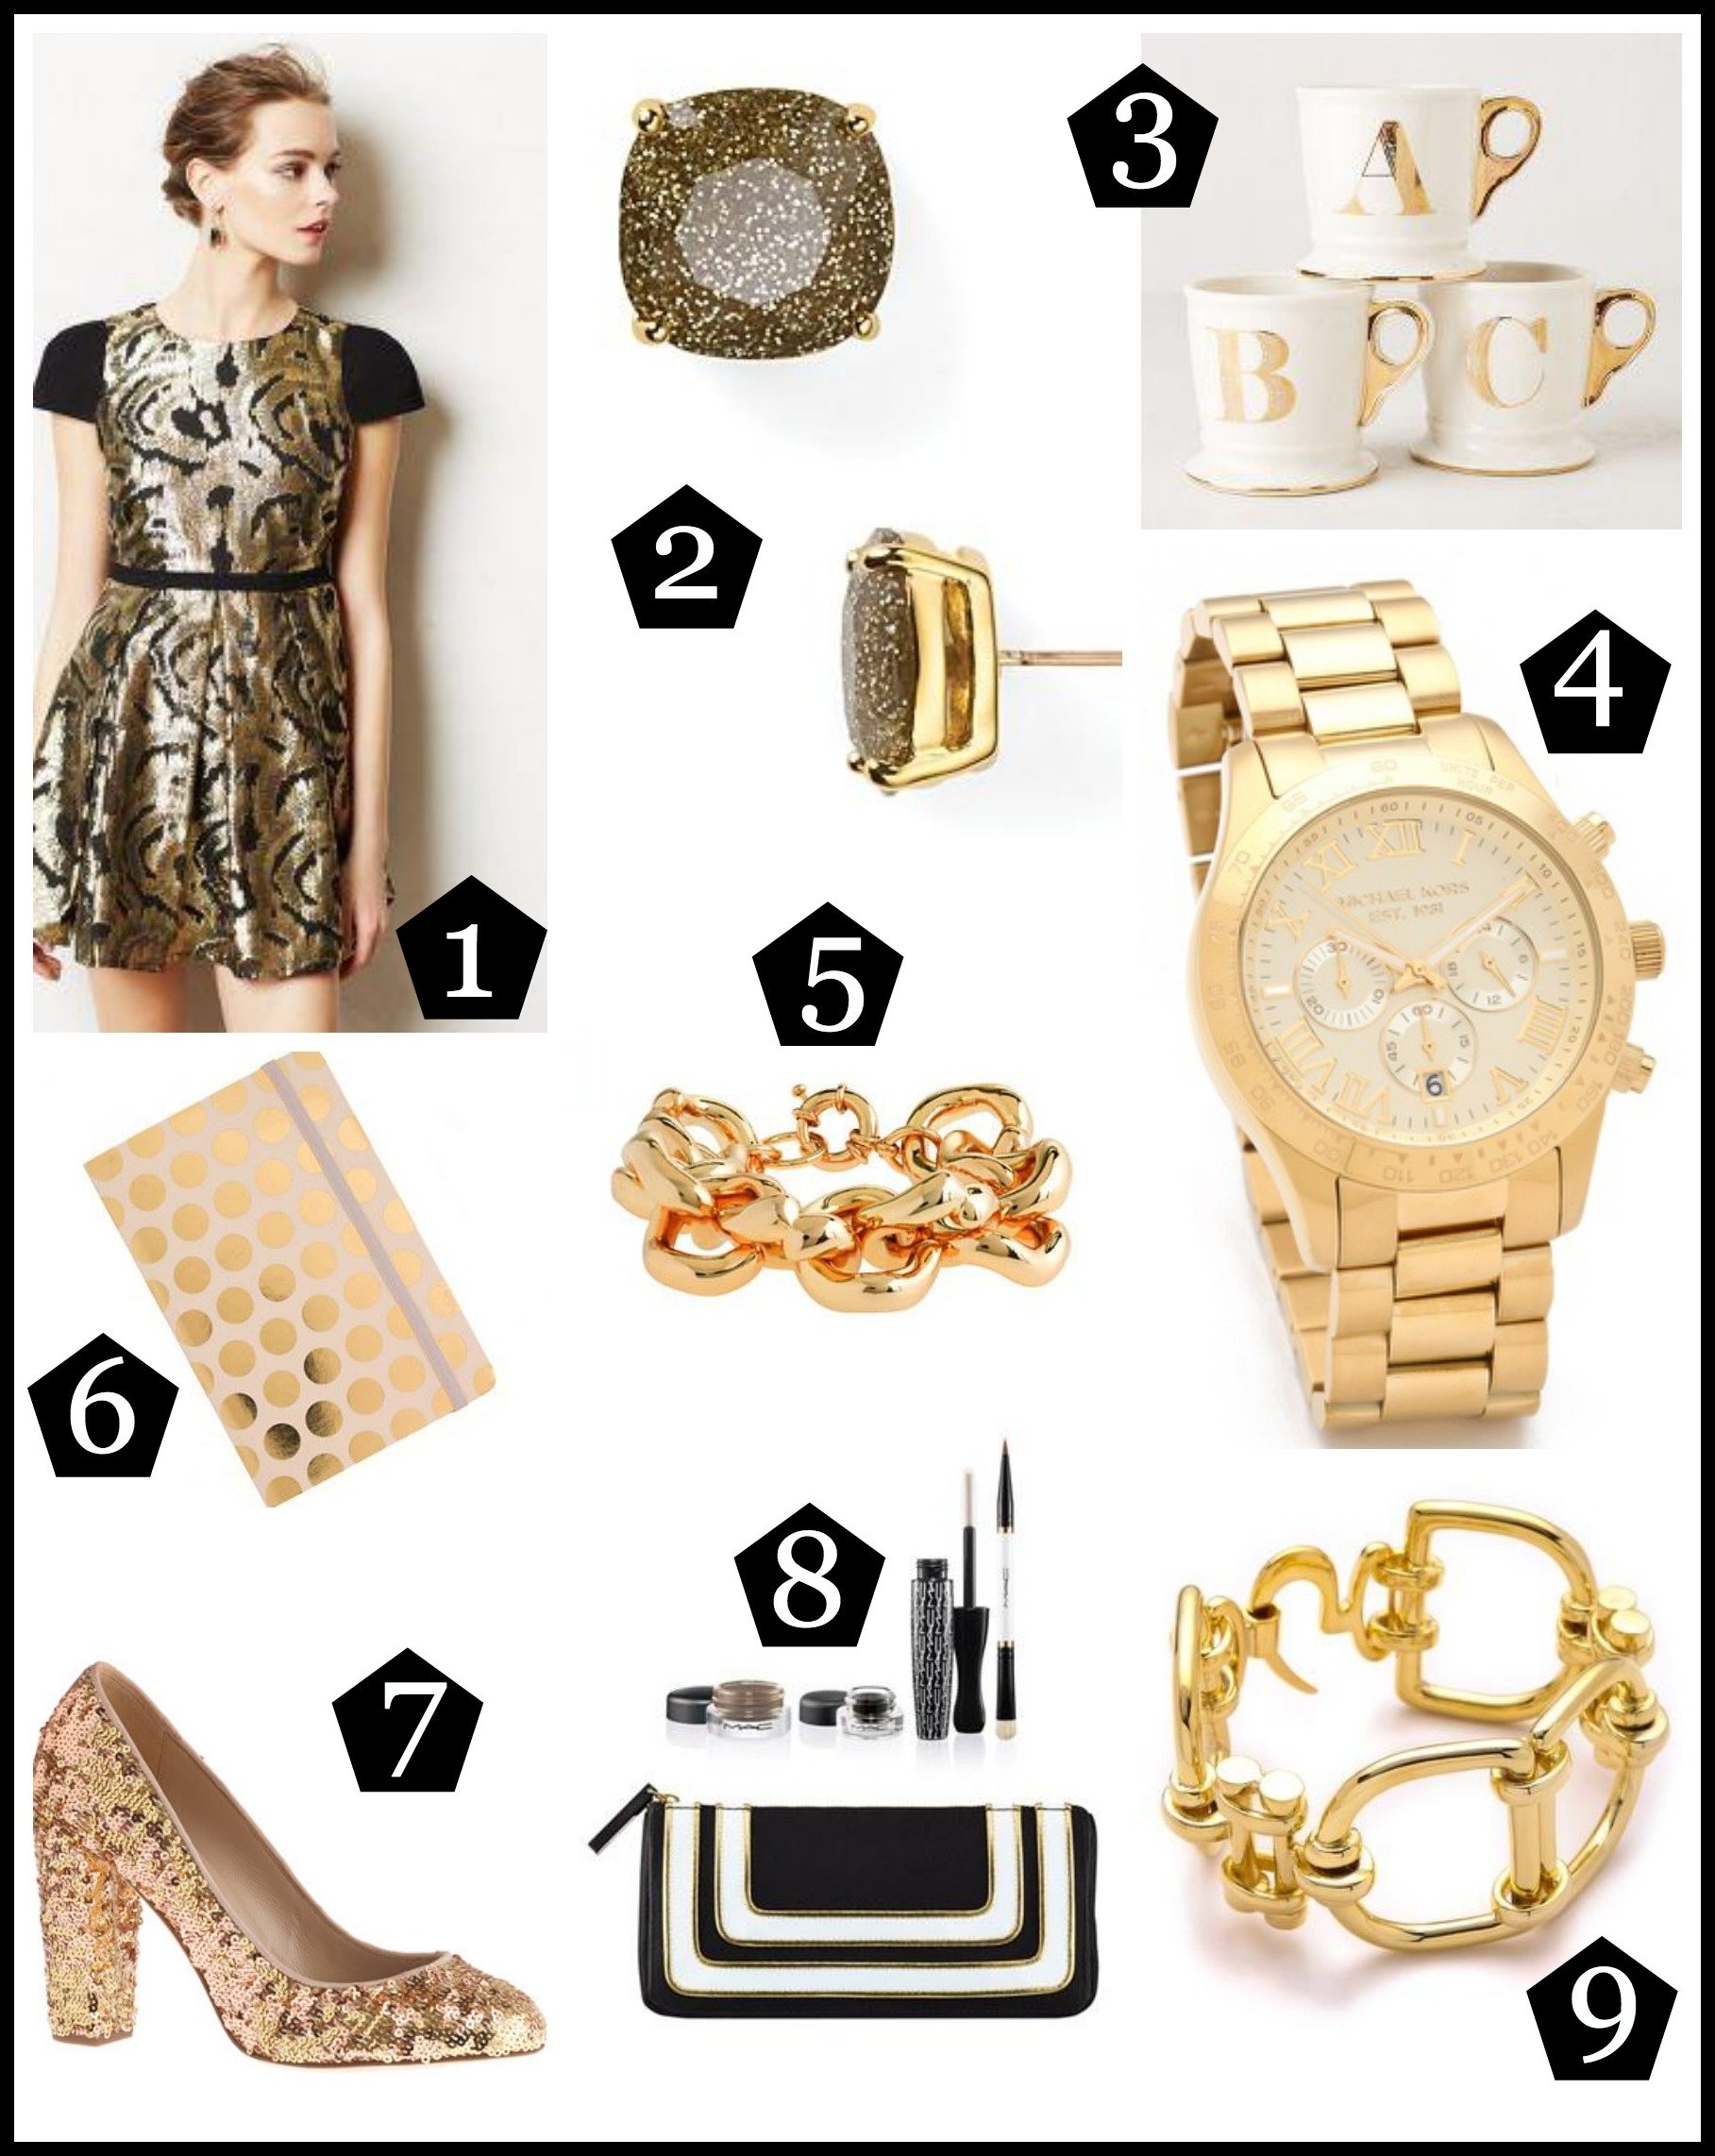 10 Great 2013 Gift Ideas For Women the jcr girls holiday gift guide gold edition the jcr girls